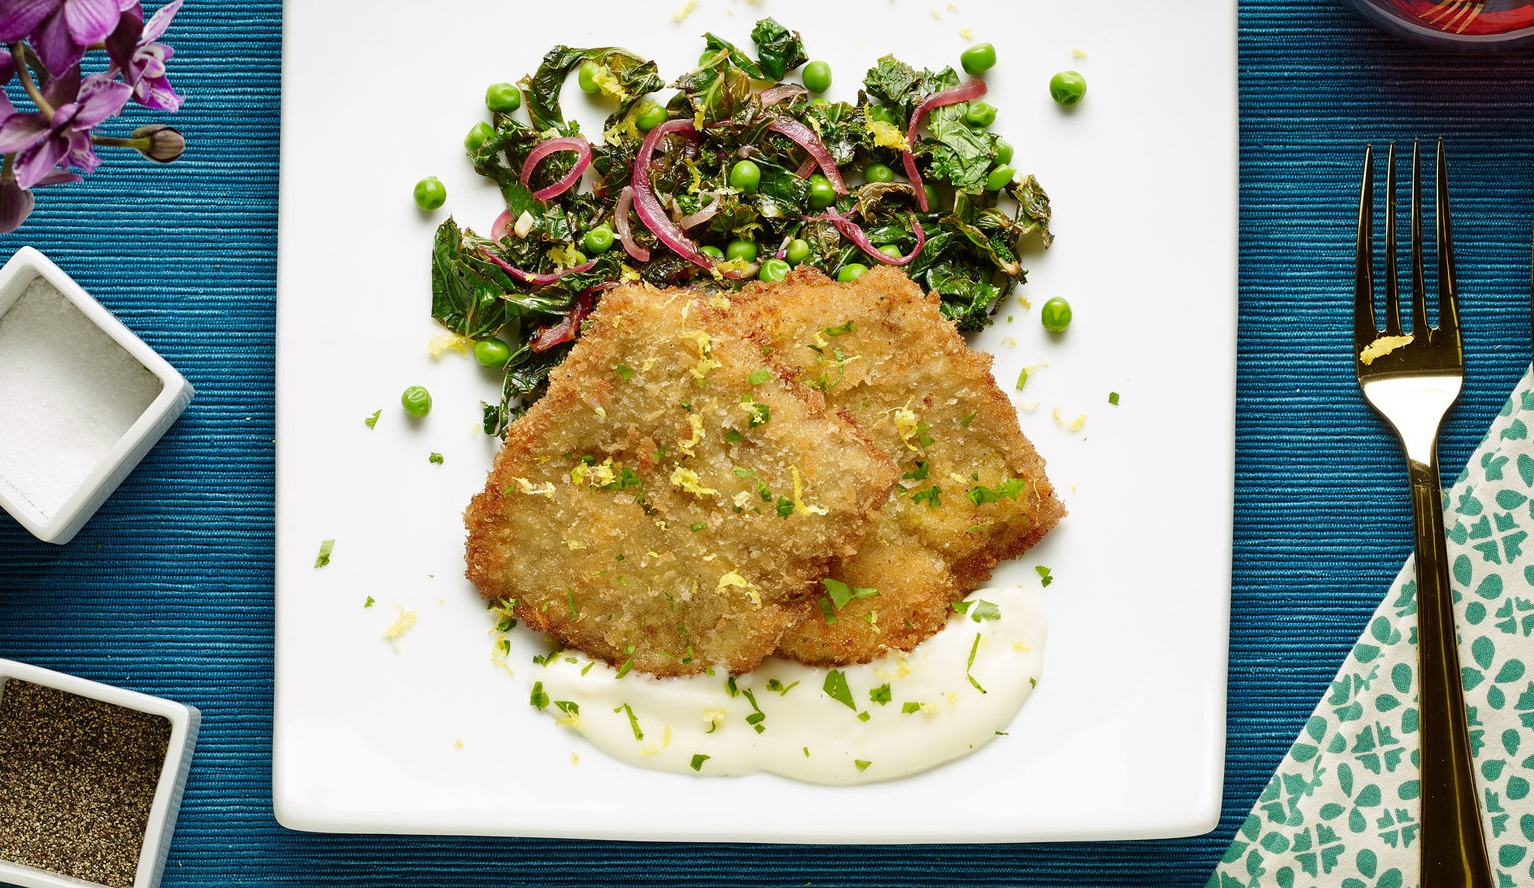 veal medallions over a pea salad with lemon juice